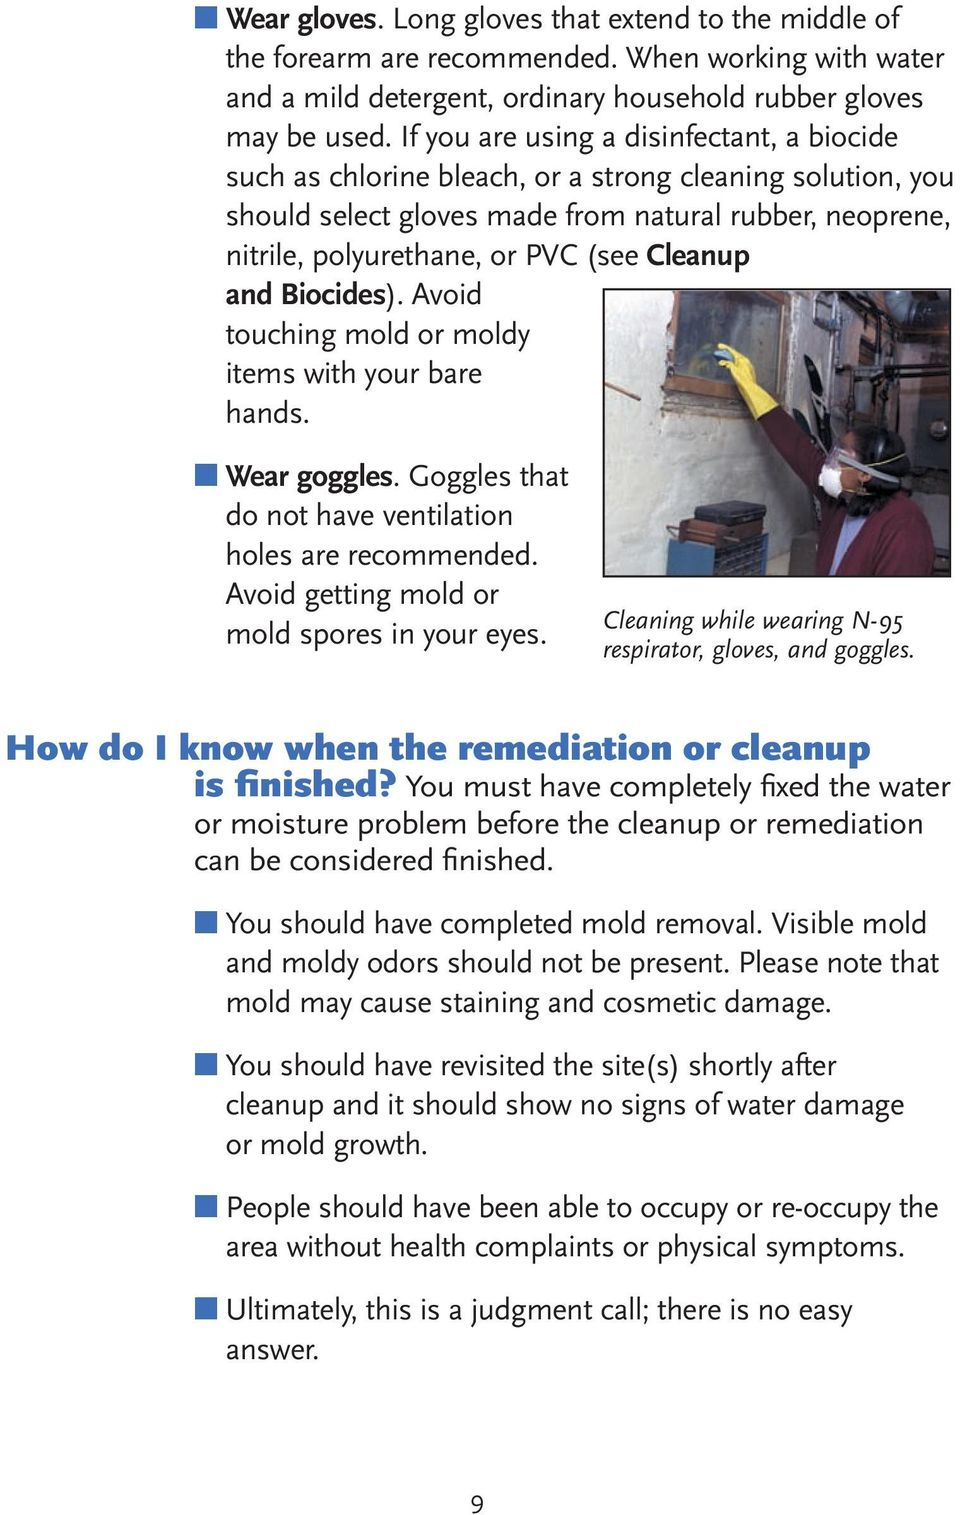 Cleanup and Biocides). Avoid touching mold or moldy items with your bare hands. Wear goggles. Goggles that do not have ventilation holes are recommended.